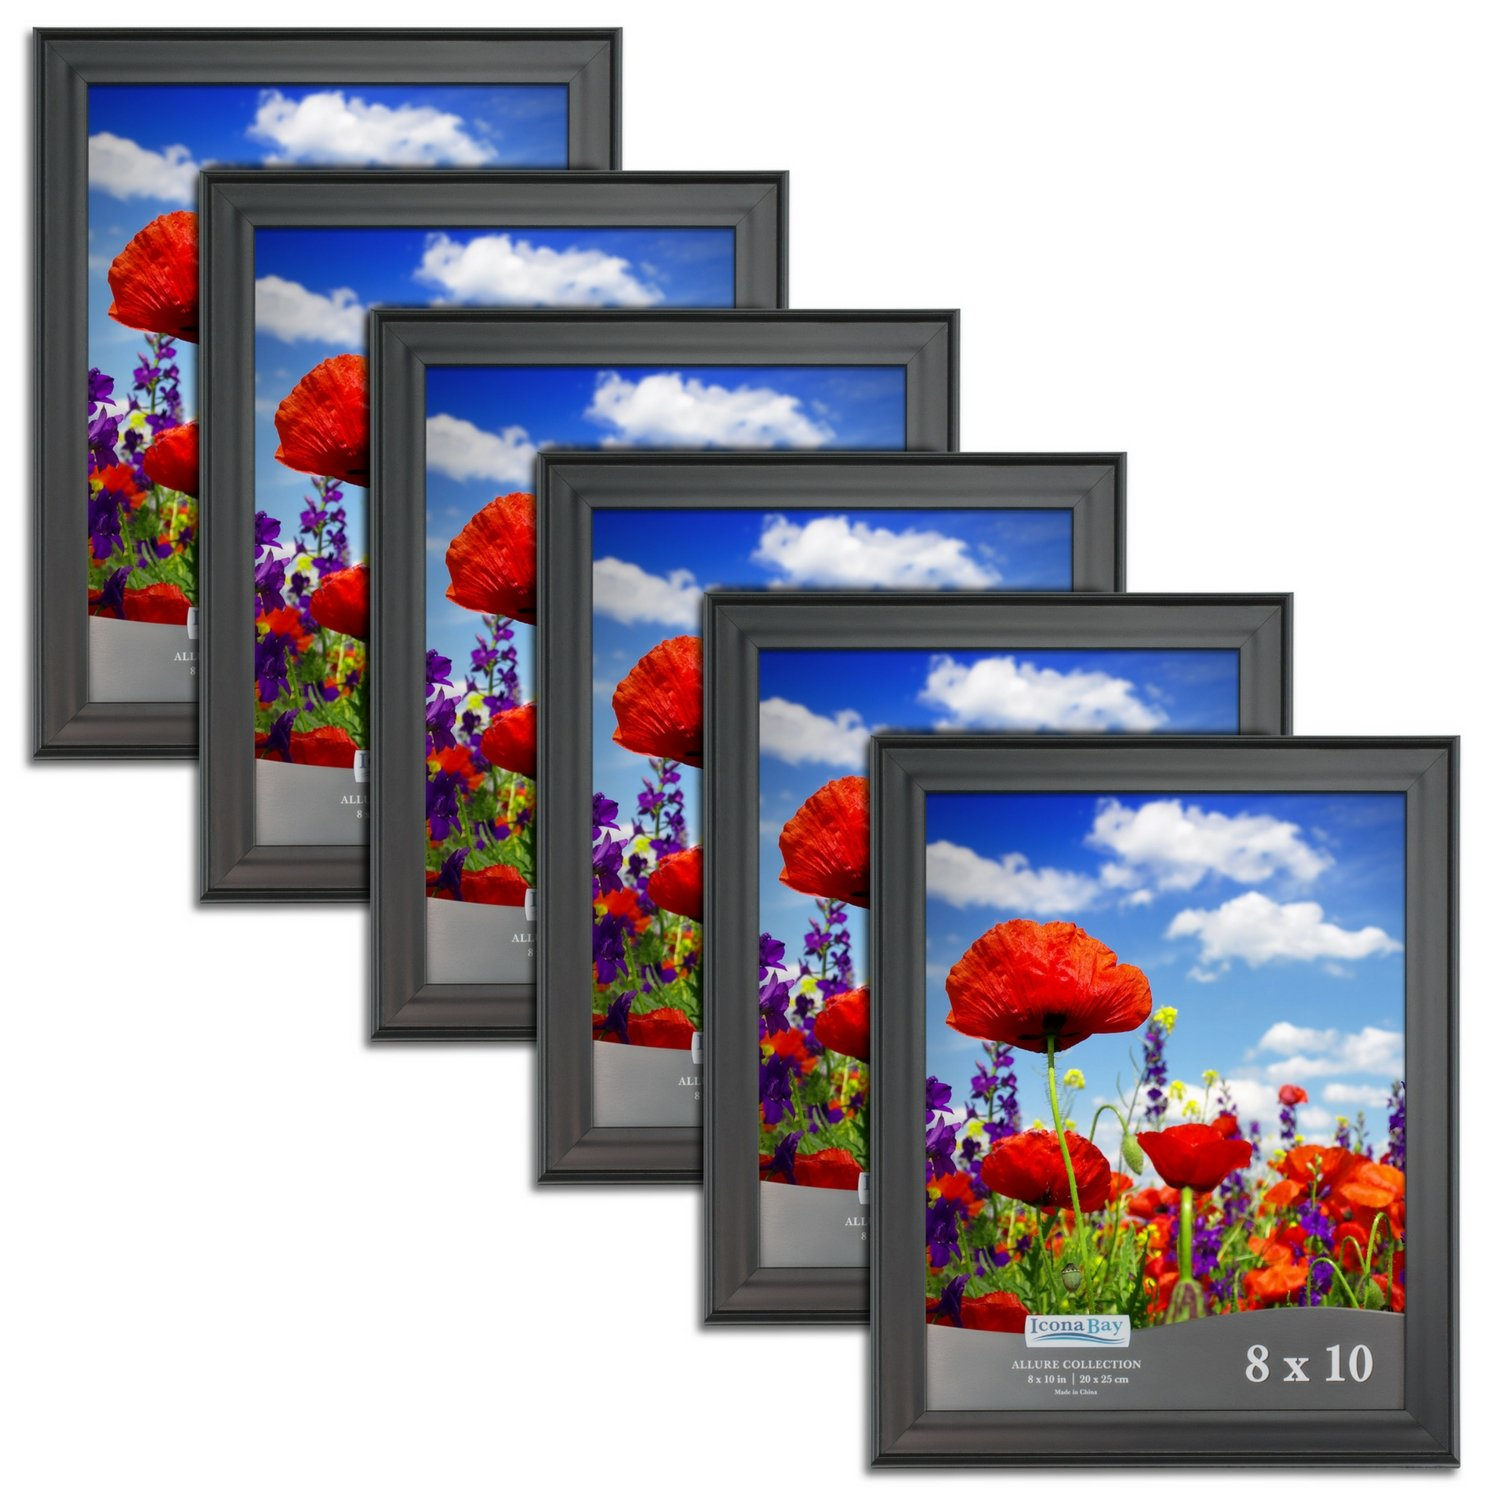 Icona Bay 8x10 Picture Frames (8 x 10, 6 Pack, Black) Bulk Set, Wall Mount or Table Top, Display Black Picture Frame Horizontal or Vertical, Allure Collection